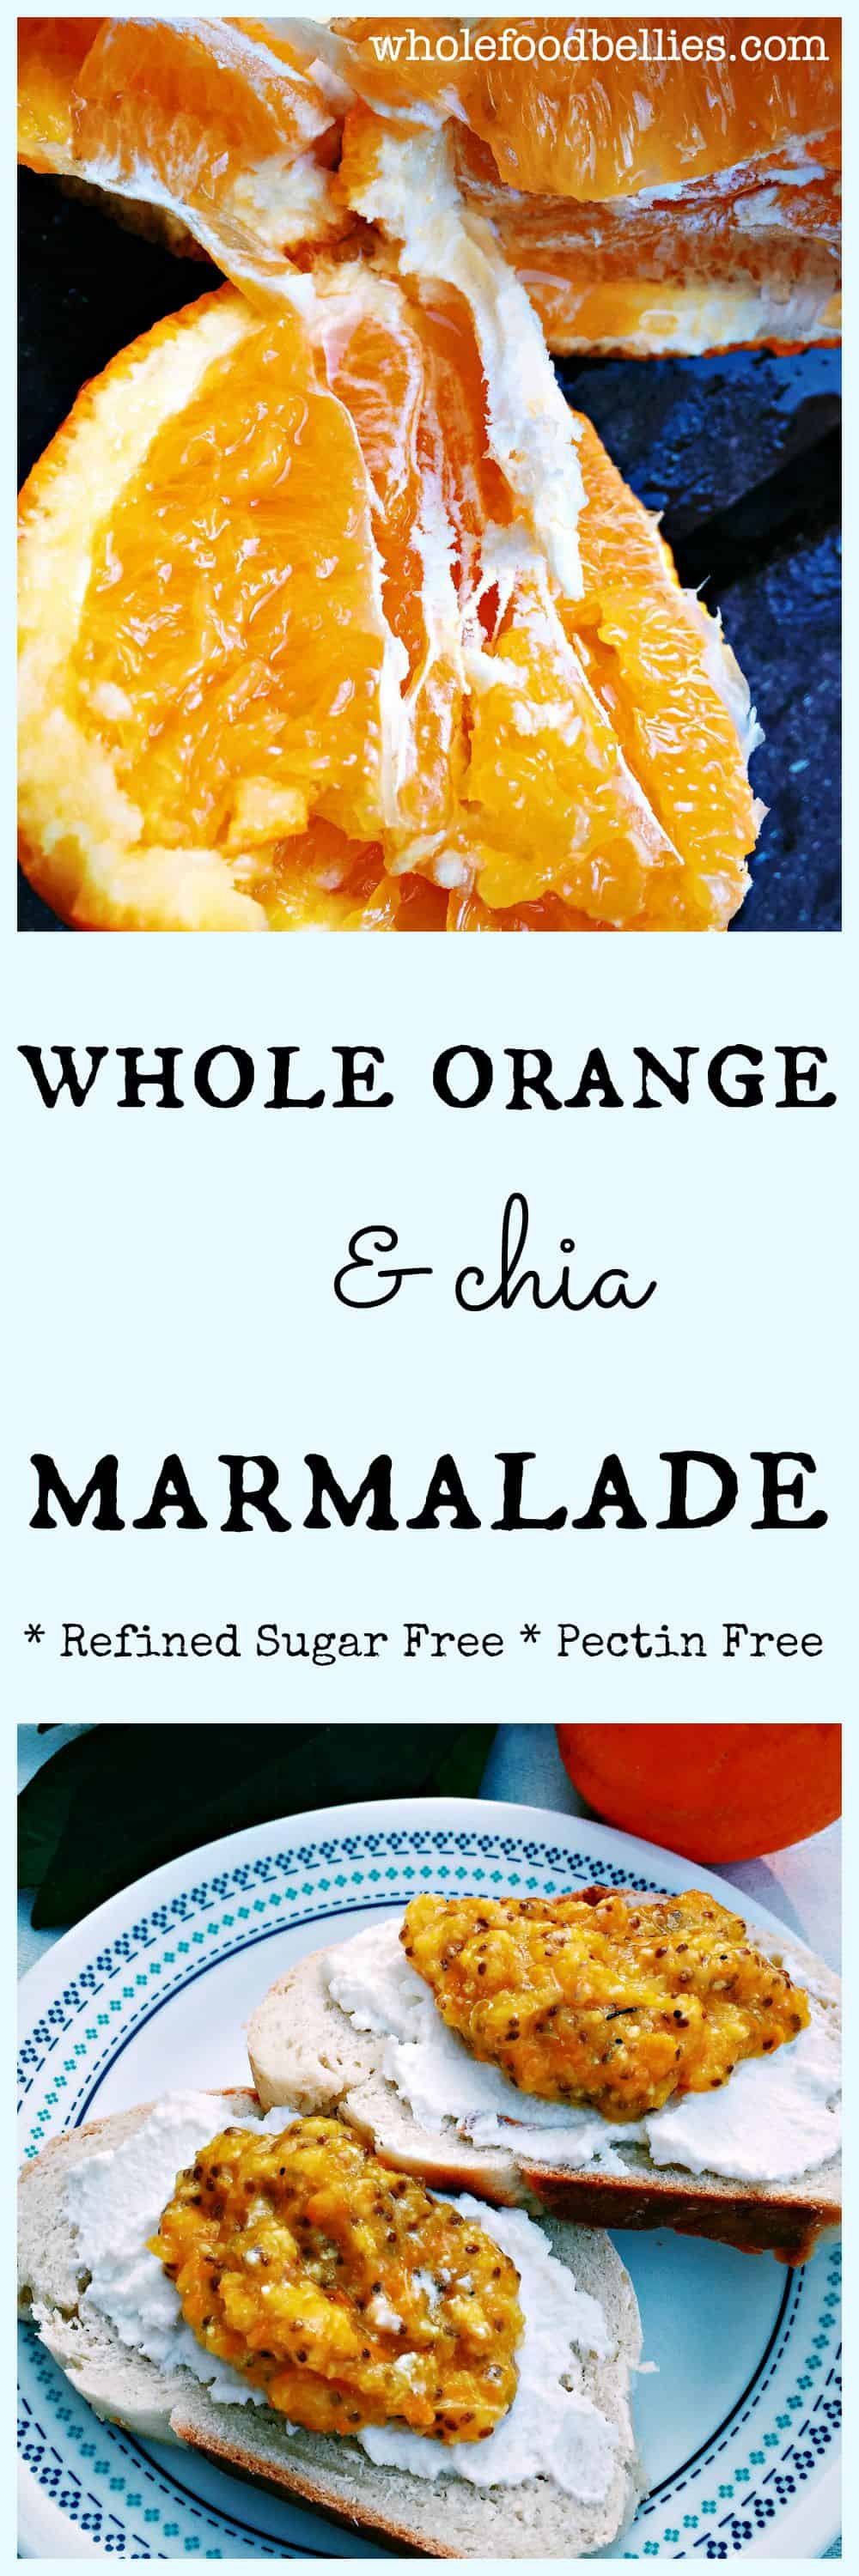 Whole Orange Chia Marmalade. Clean eating and full of goodness. Freezer friendly